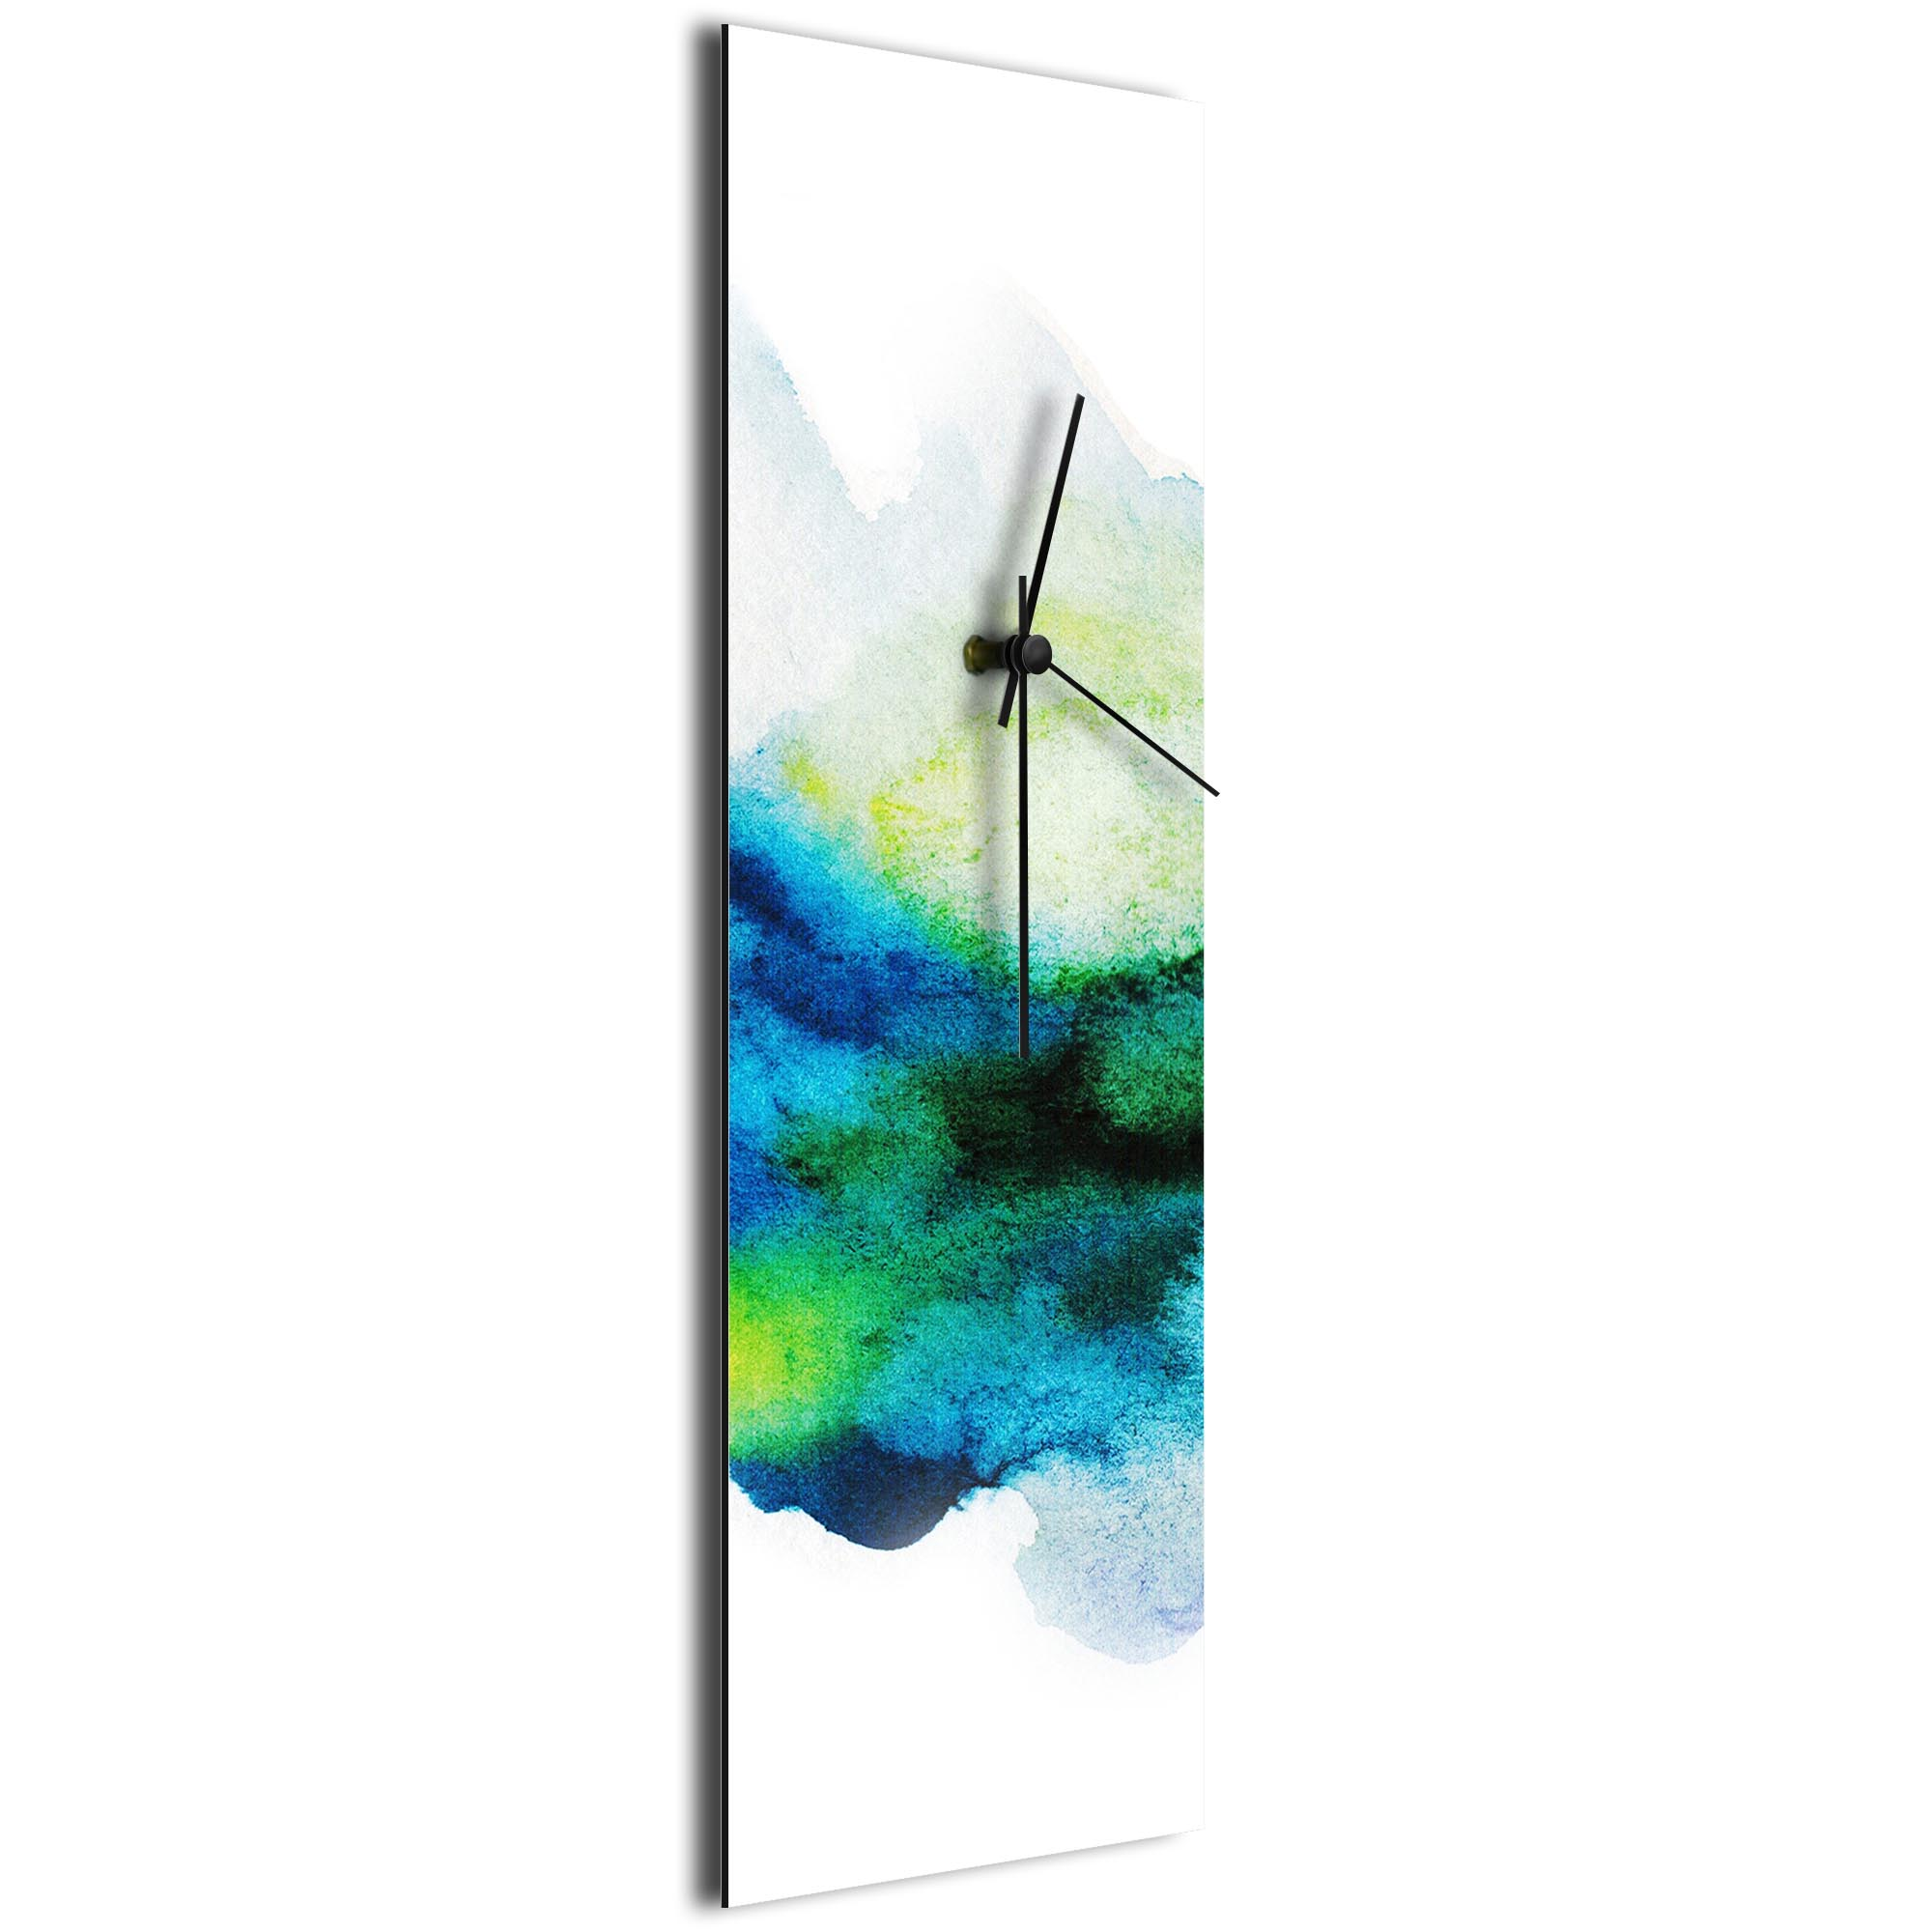 Watercolor Clock v1 by NAY - Watercolors Coastal Wall Clock - Image 2